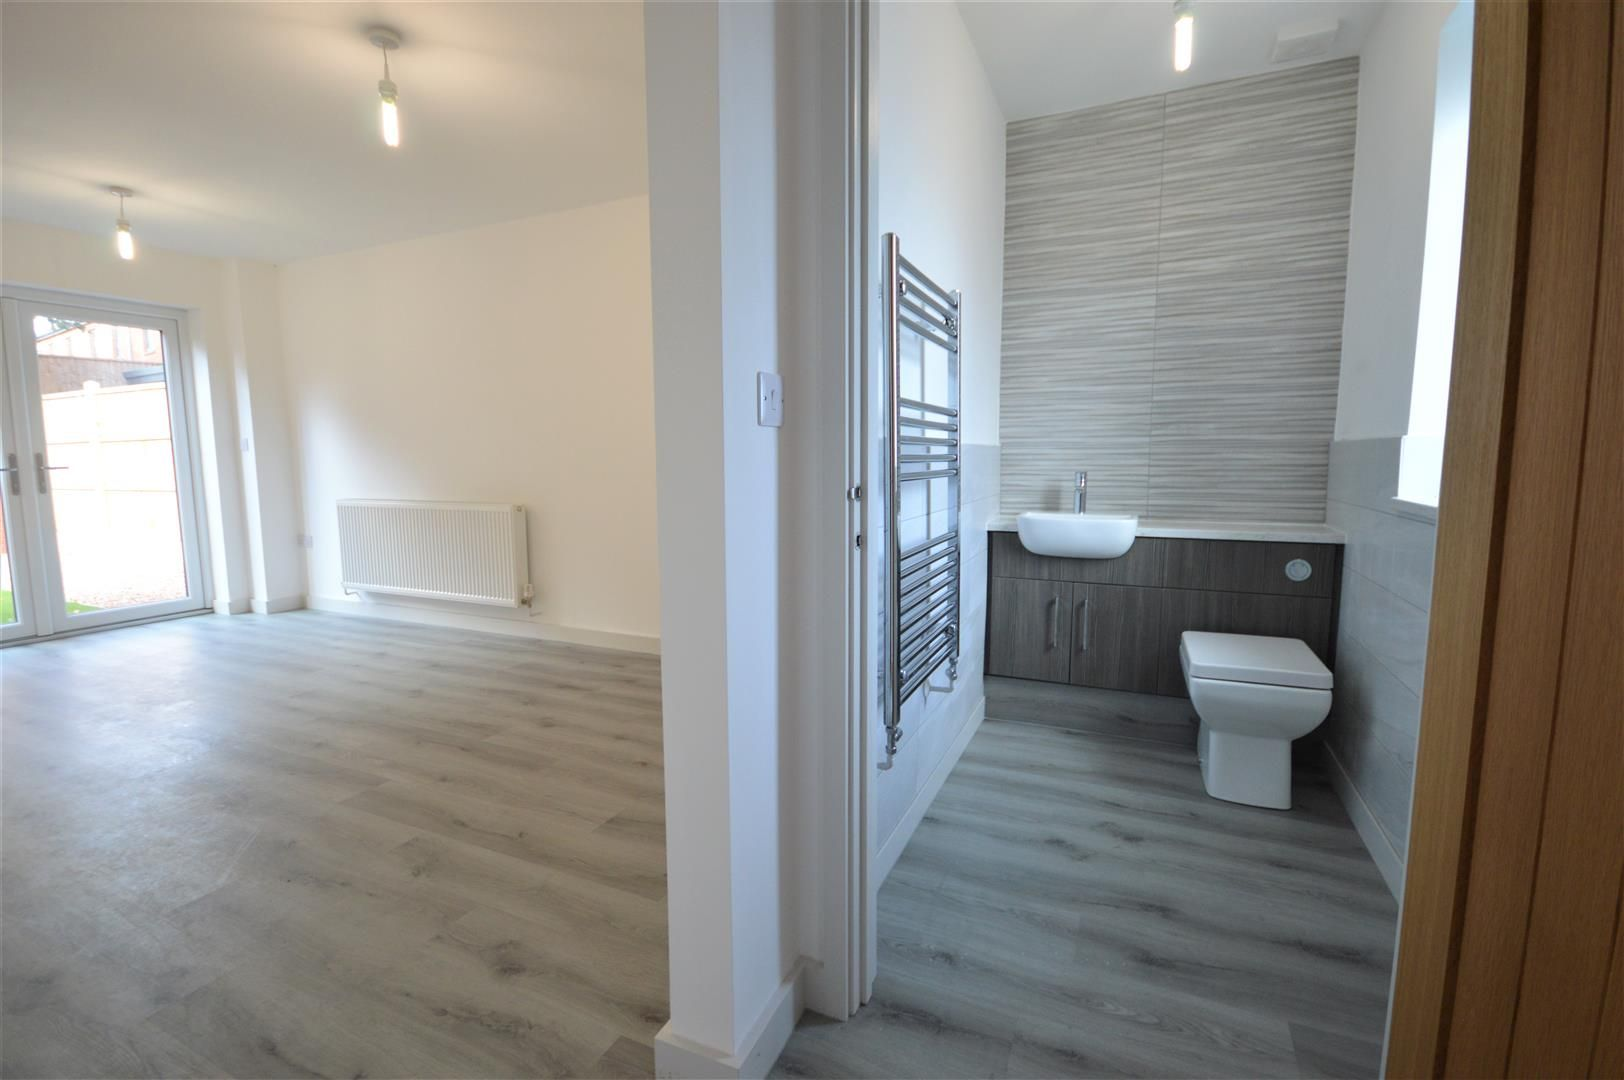 2 bed semi-detached for sale in Leominster 6